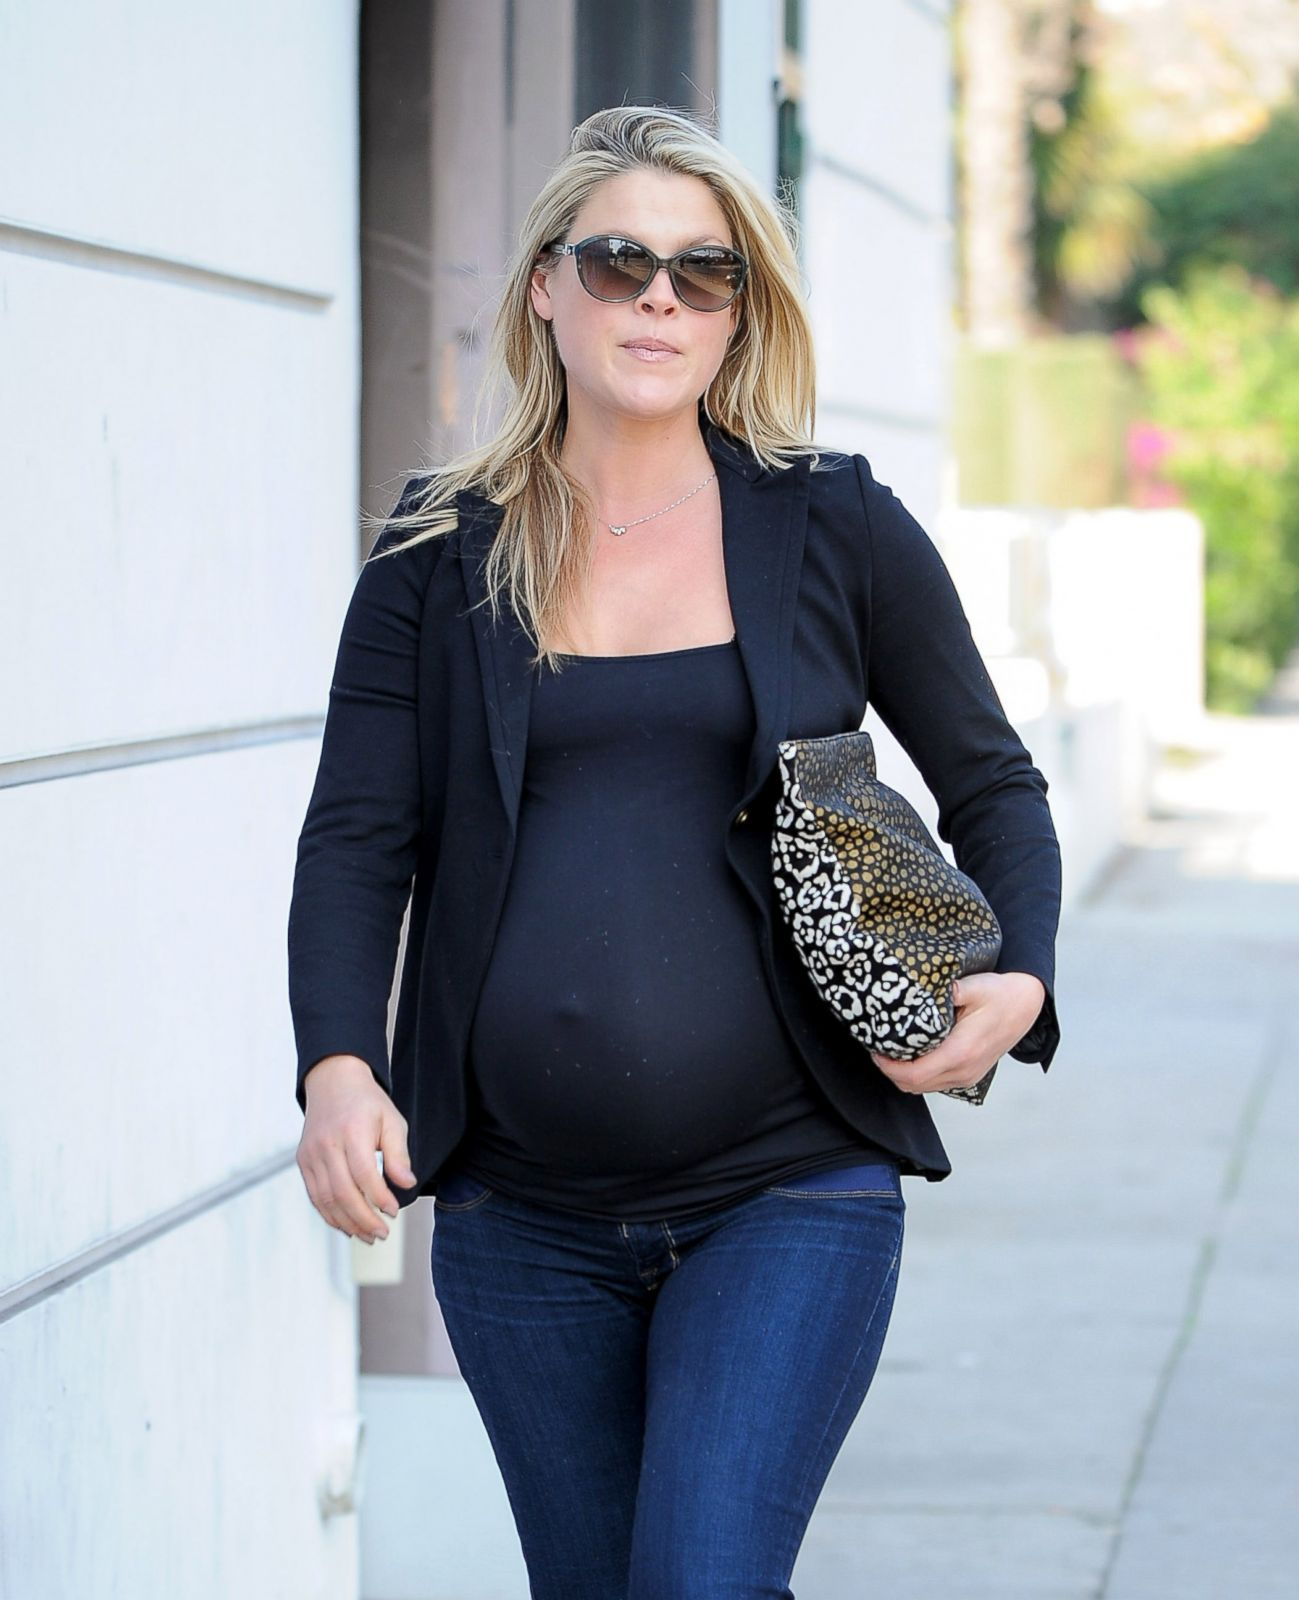 Pregnant Celebrities Show Off 3rd Trimester Baby Bumps in ...